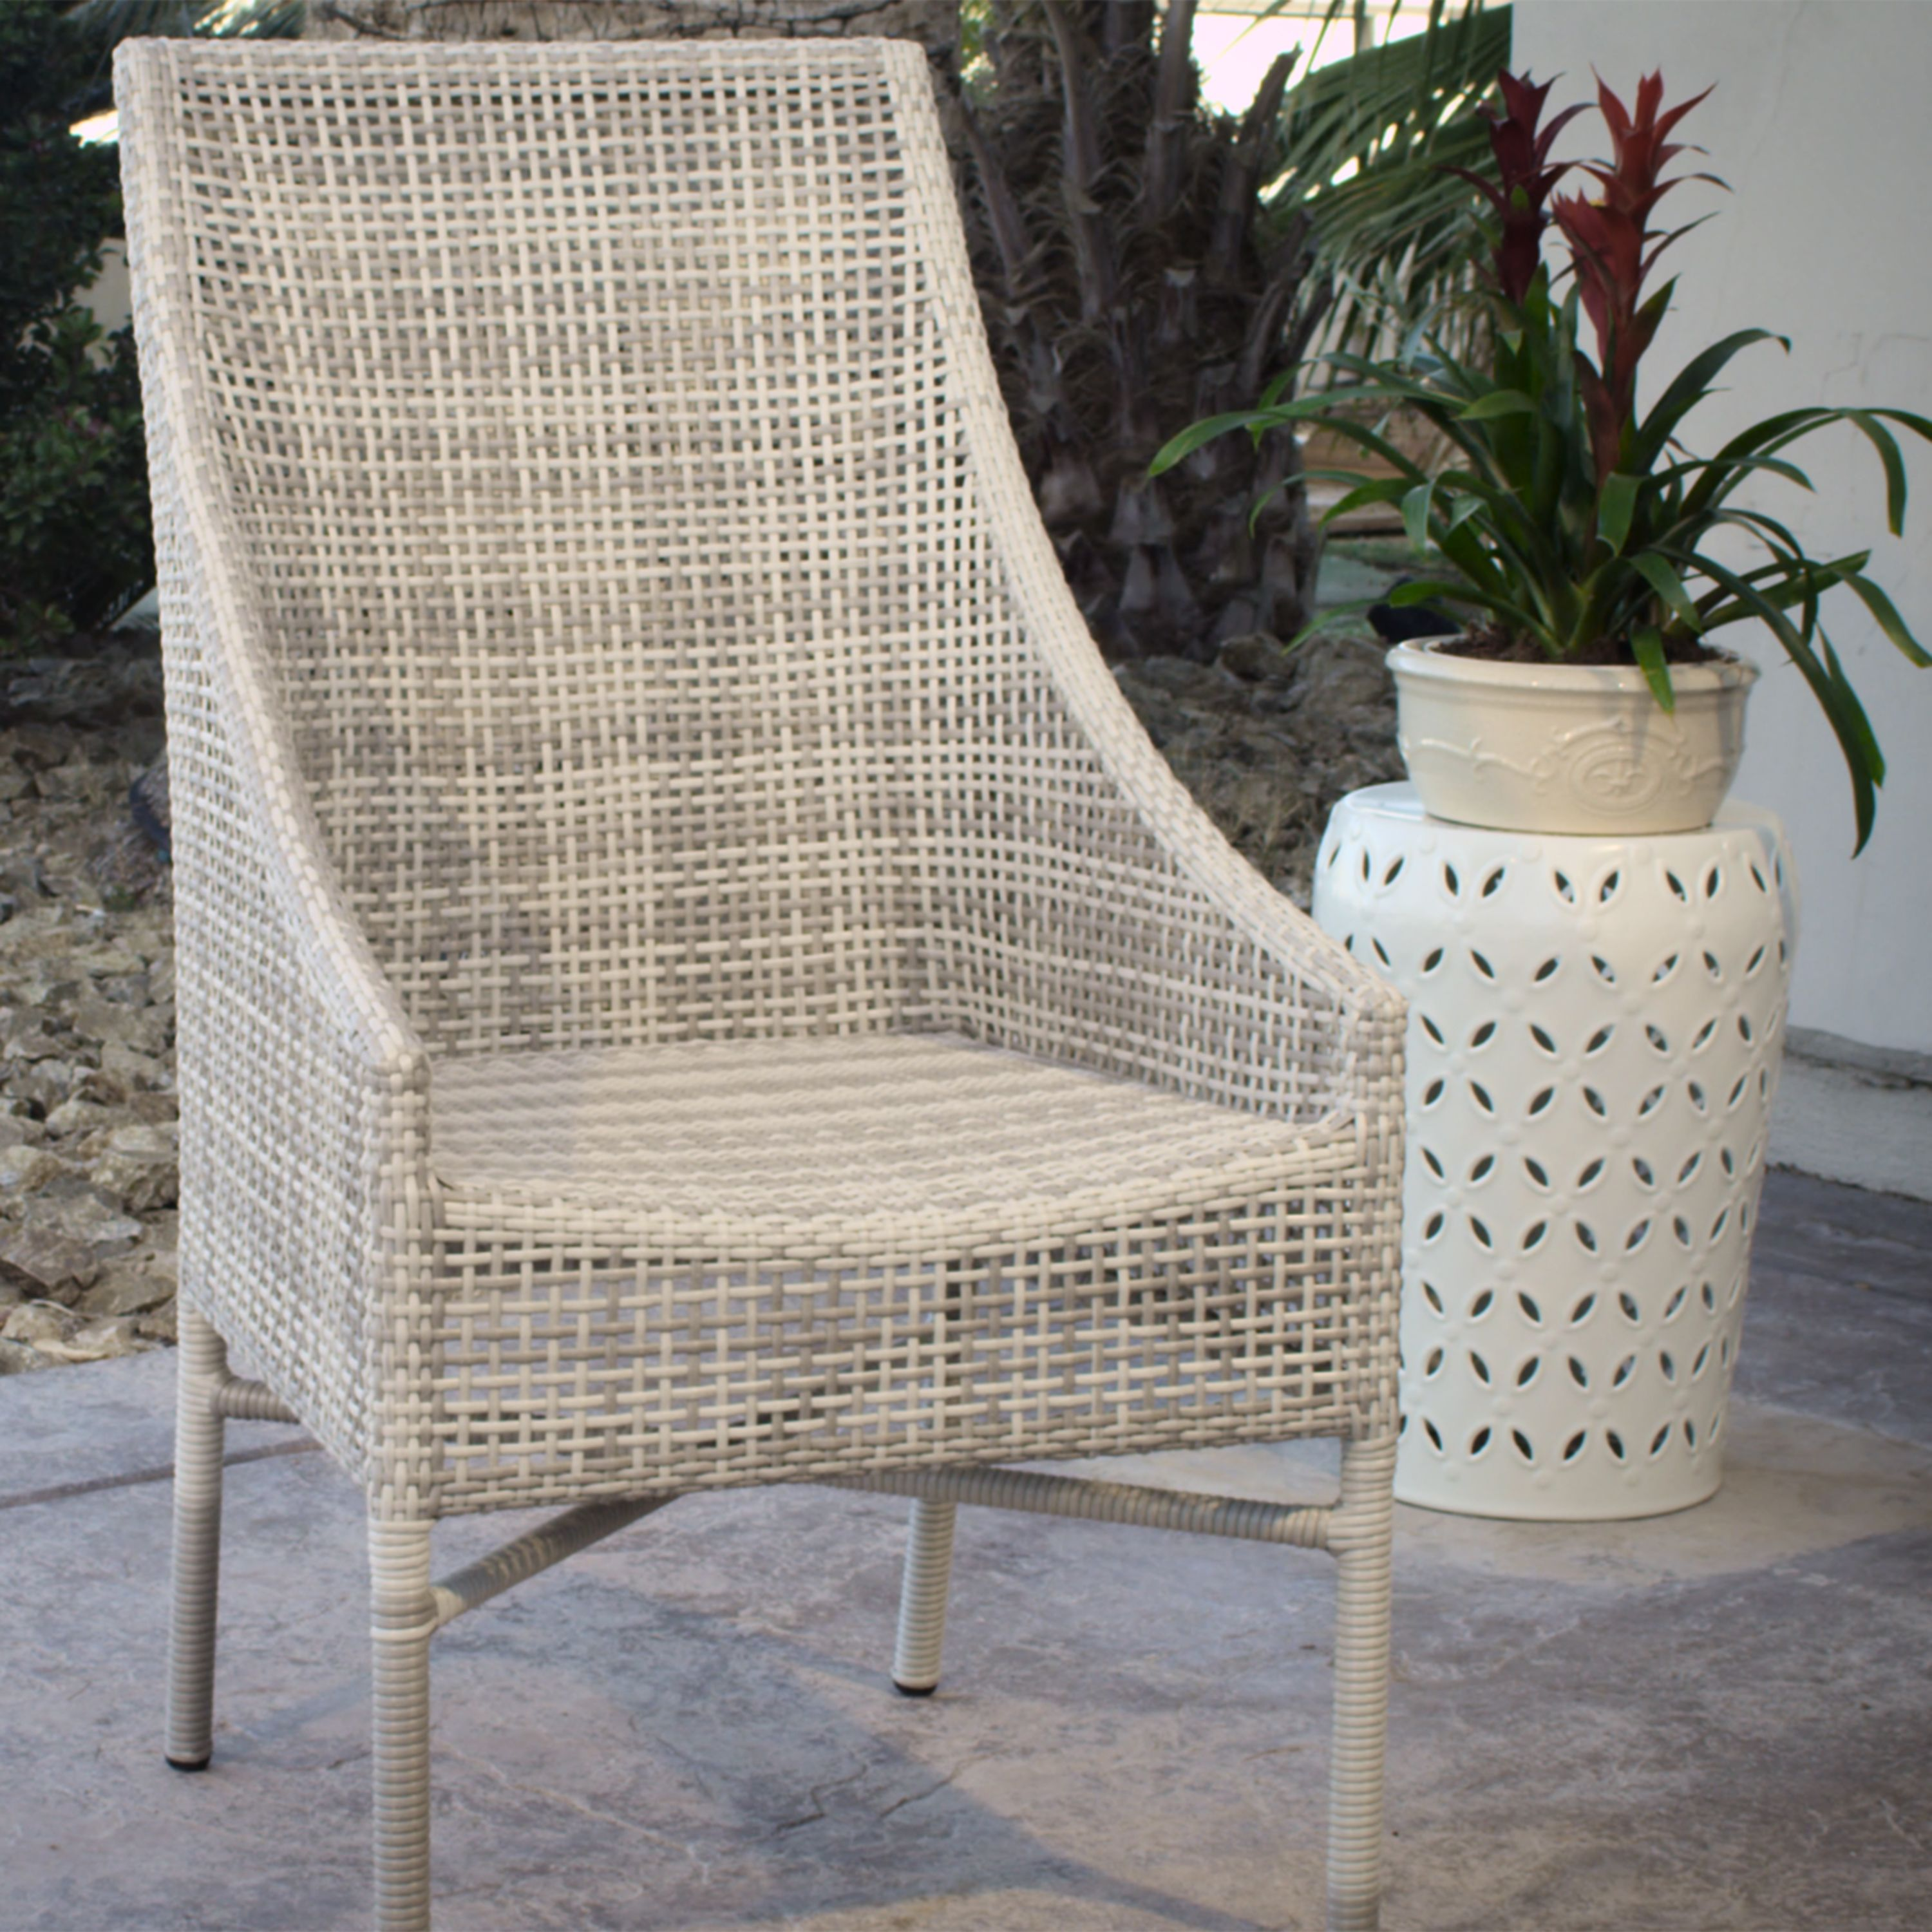 Rustic Gray All Weather Wicker Serasa Dining Chairs Set of 2